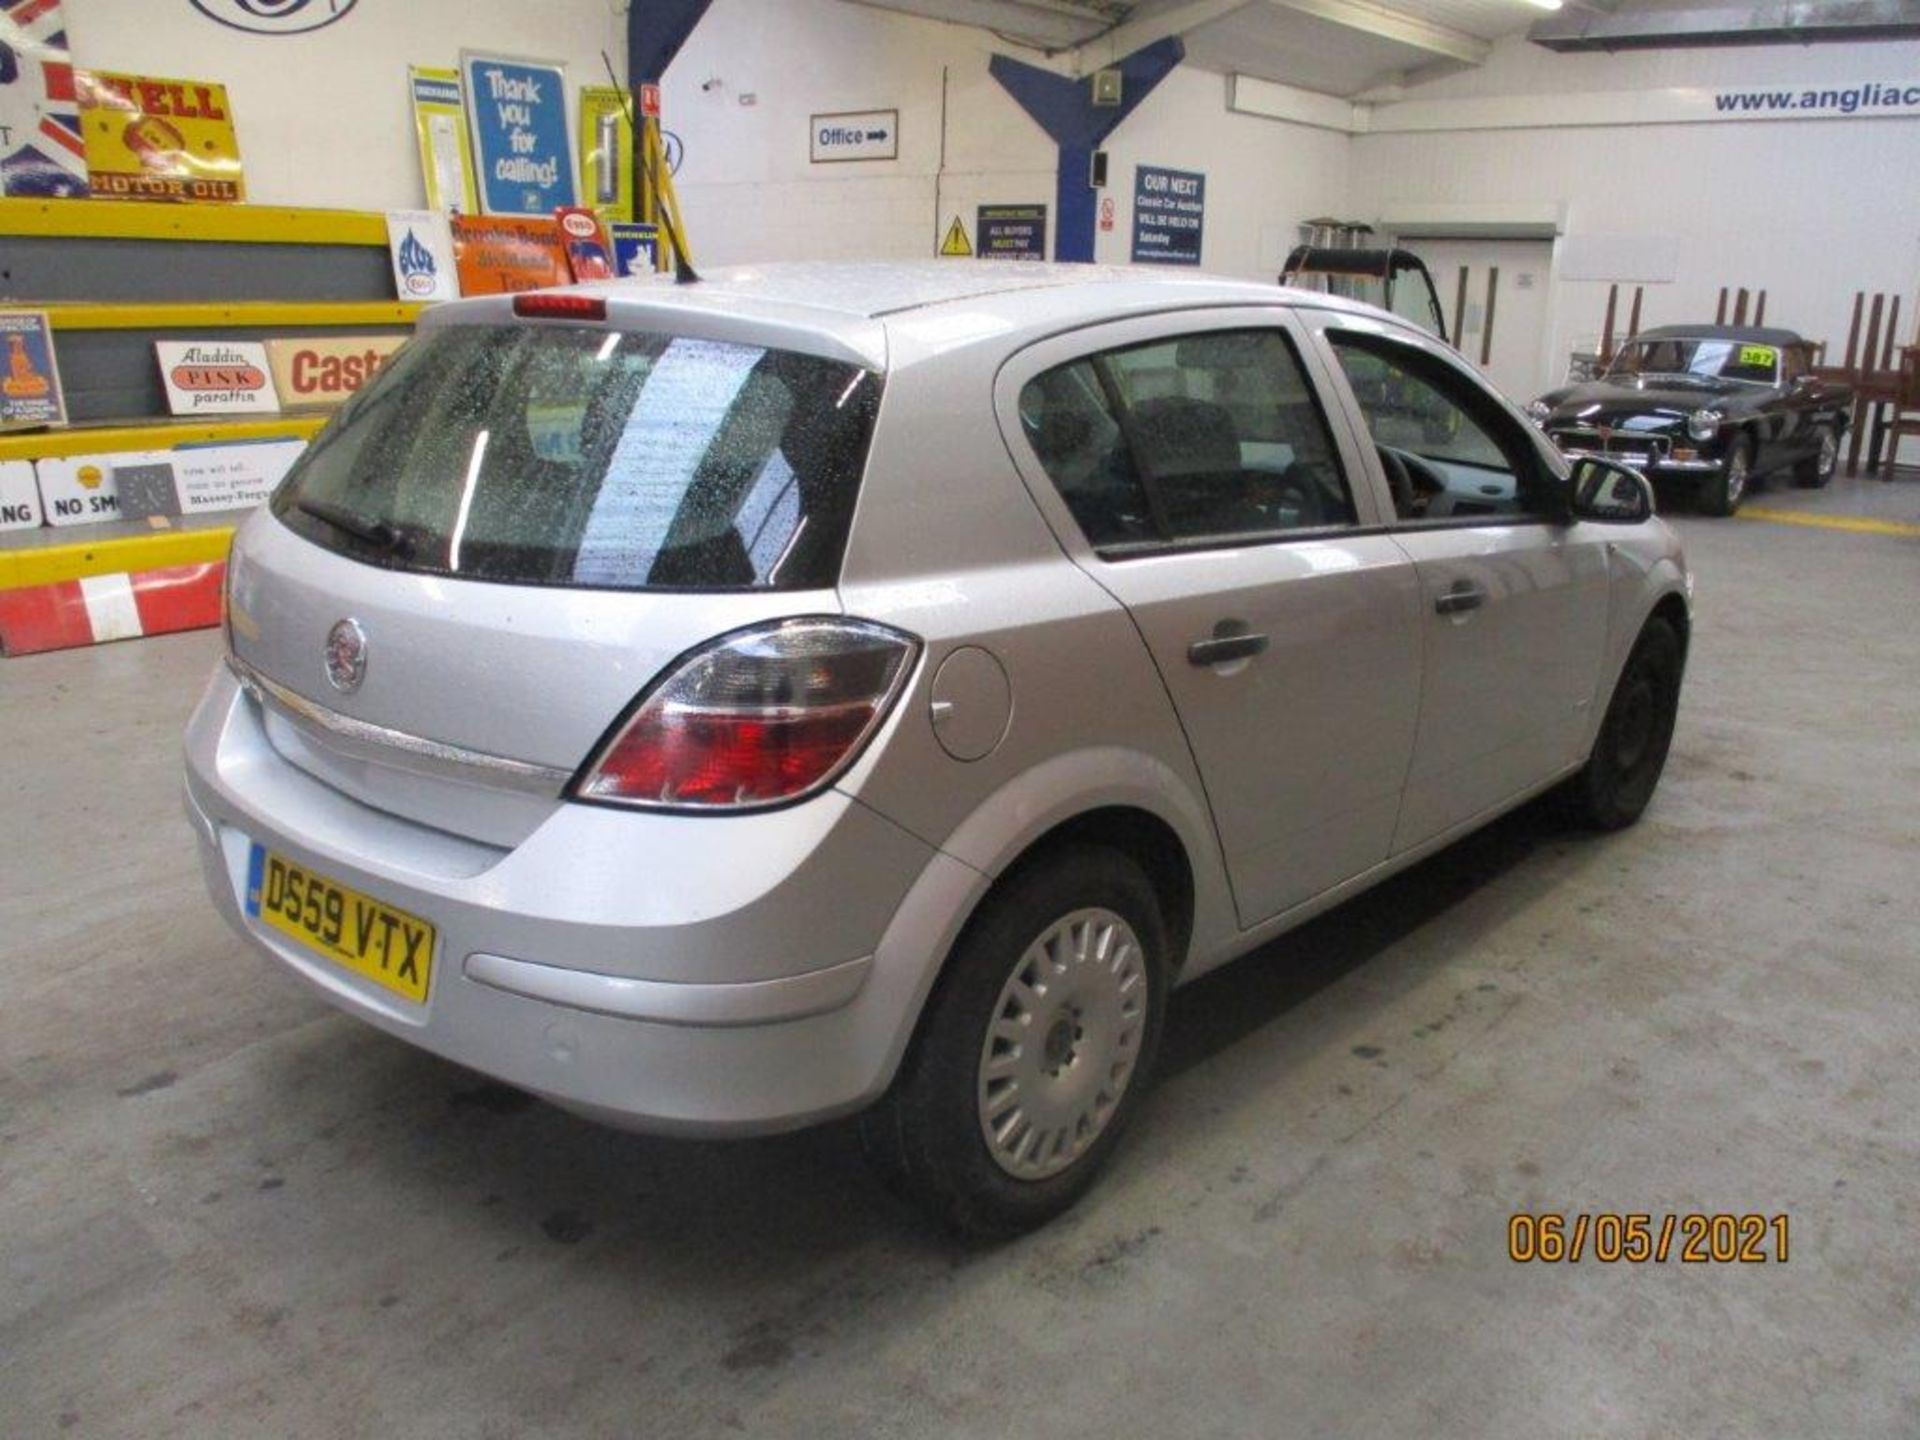 10 59 Vauxhall Astra Life - Image 6 of 14